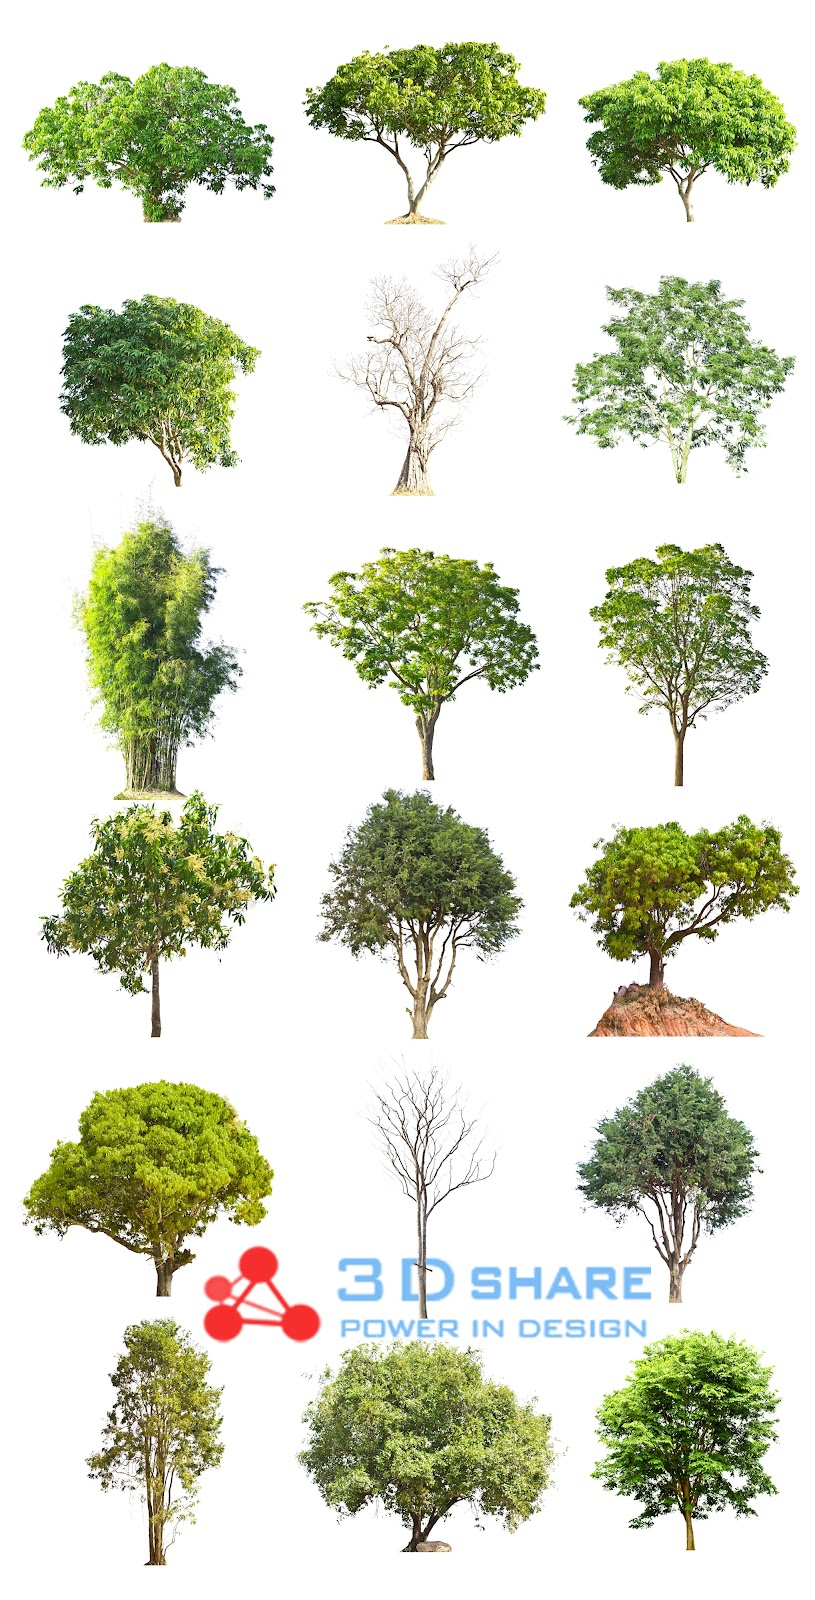 [photoshop][tree] part 19